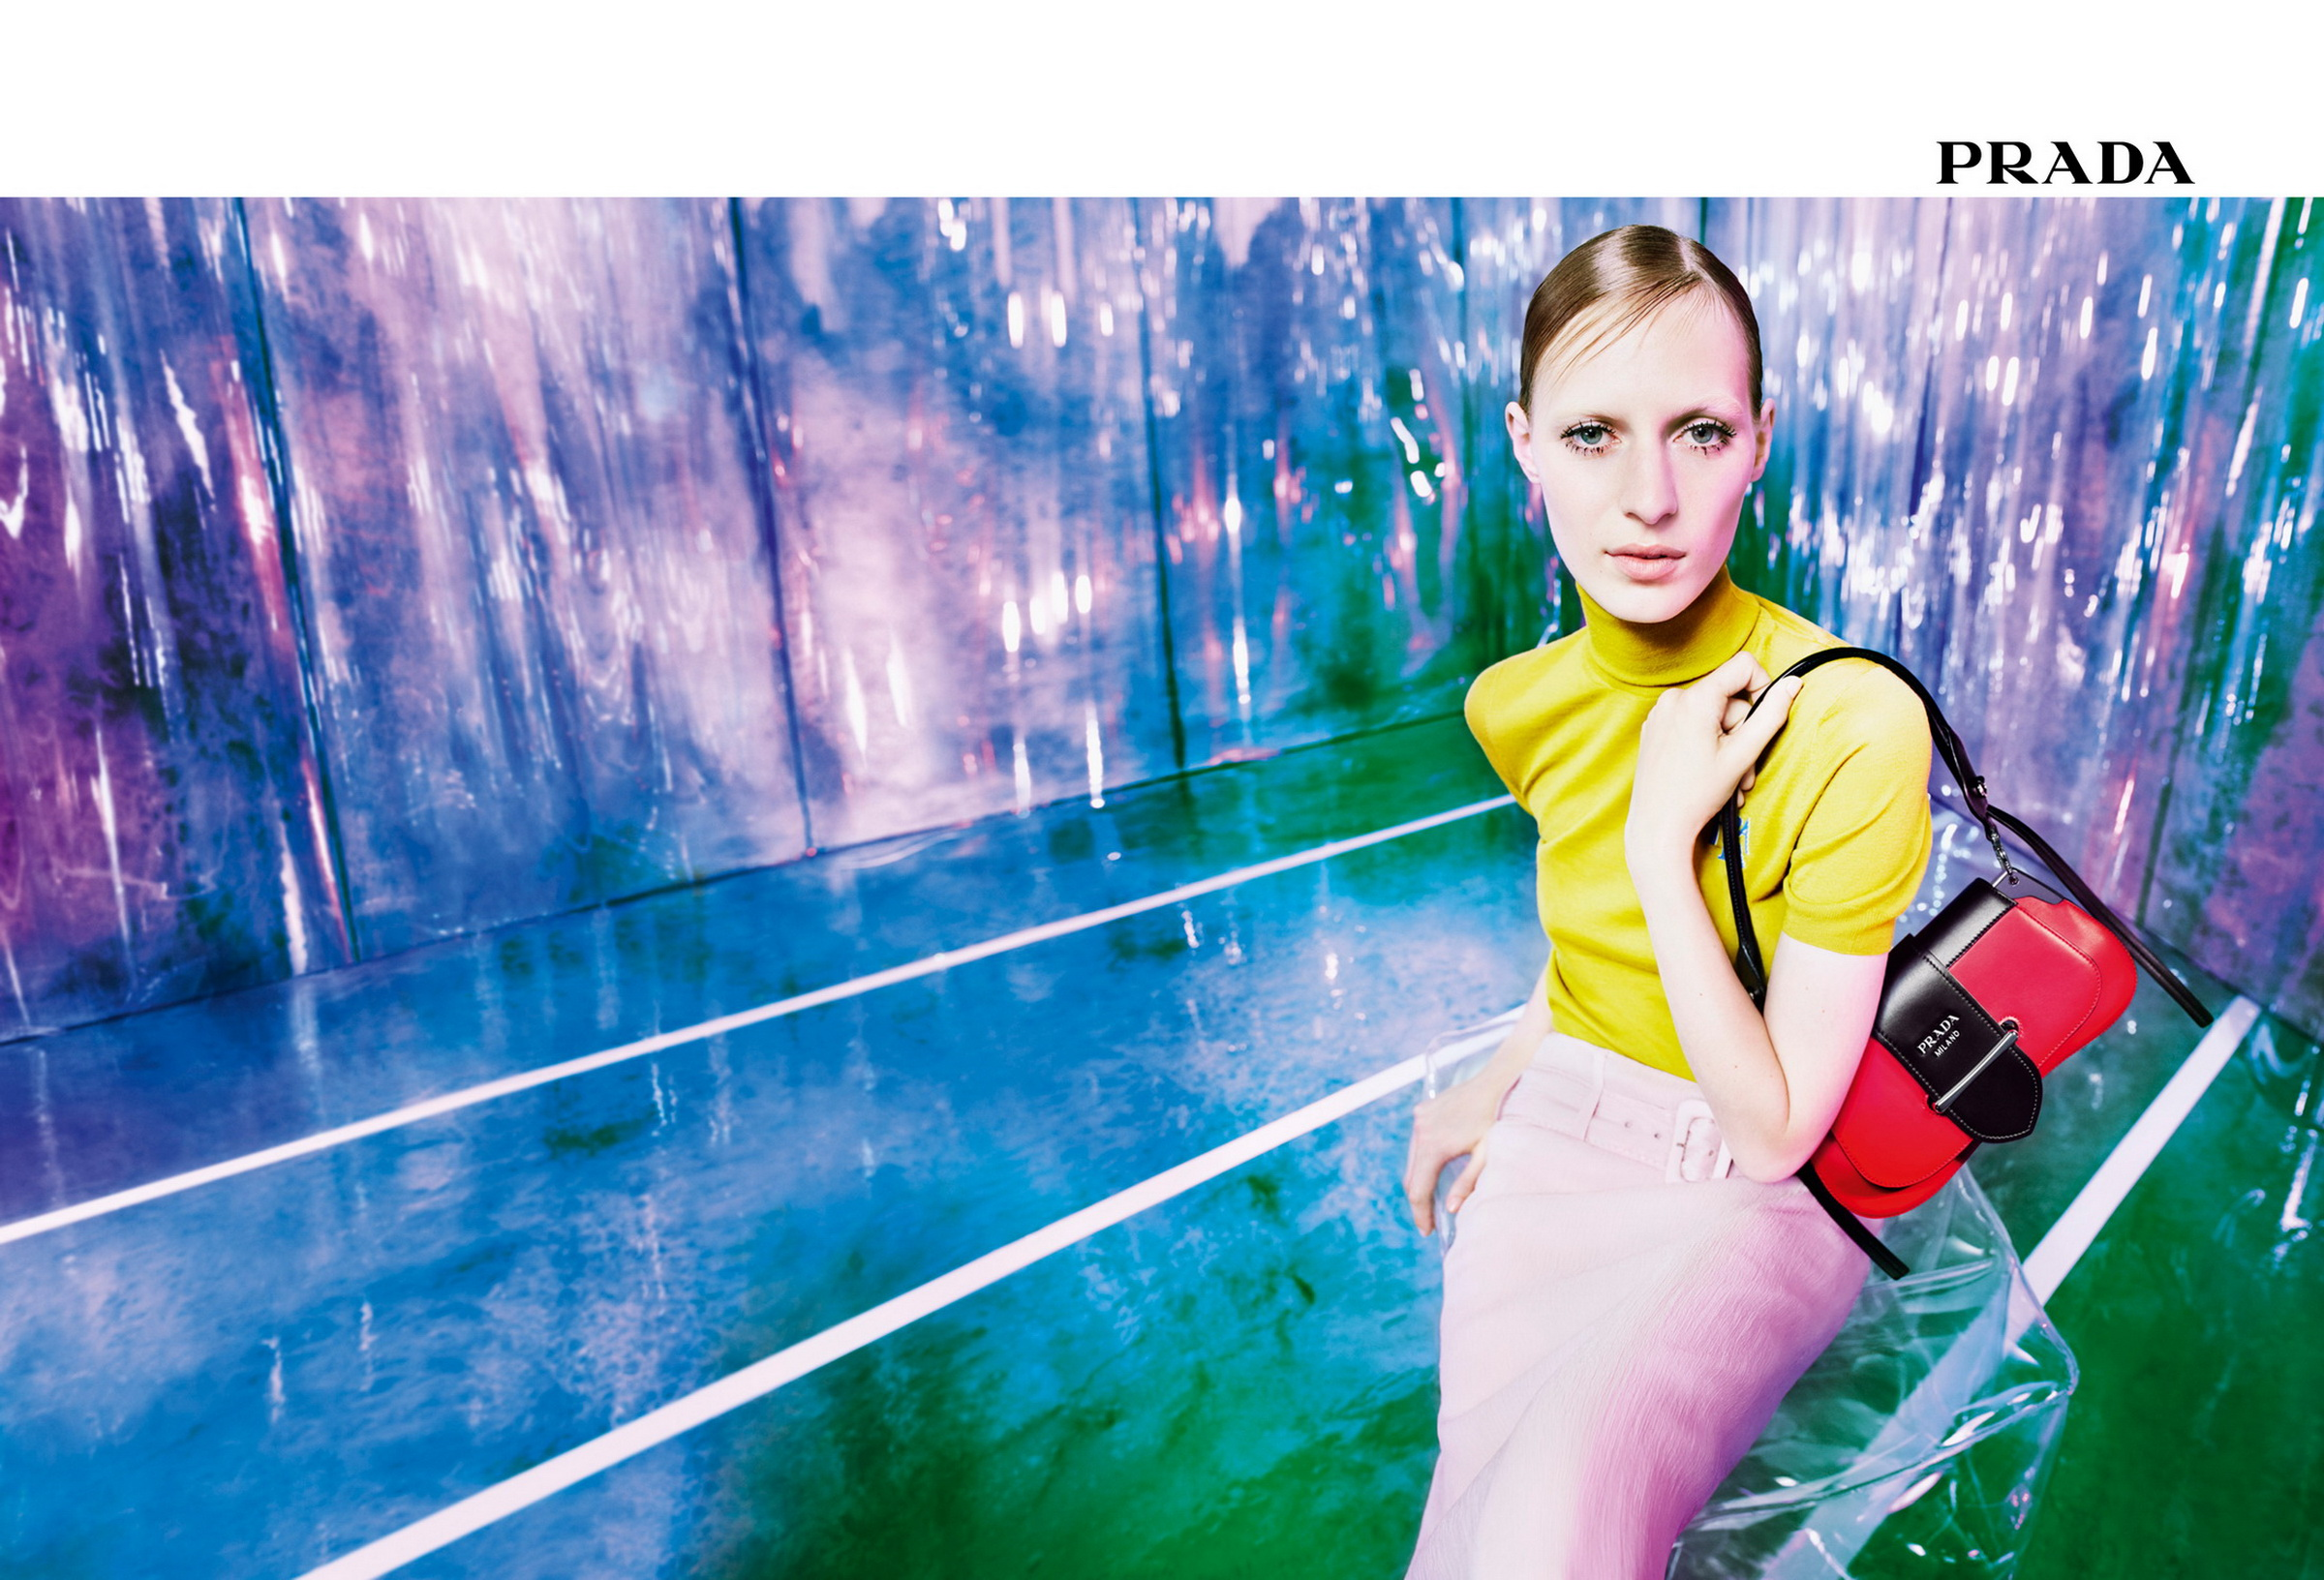 Prada Resort 2019 Ad Campaign by Willy Vanderperre